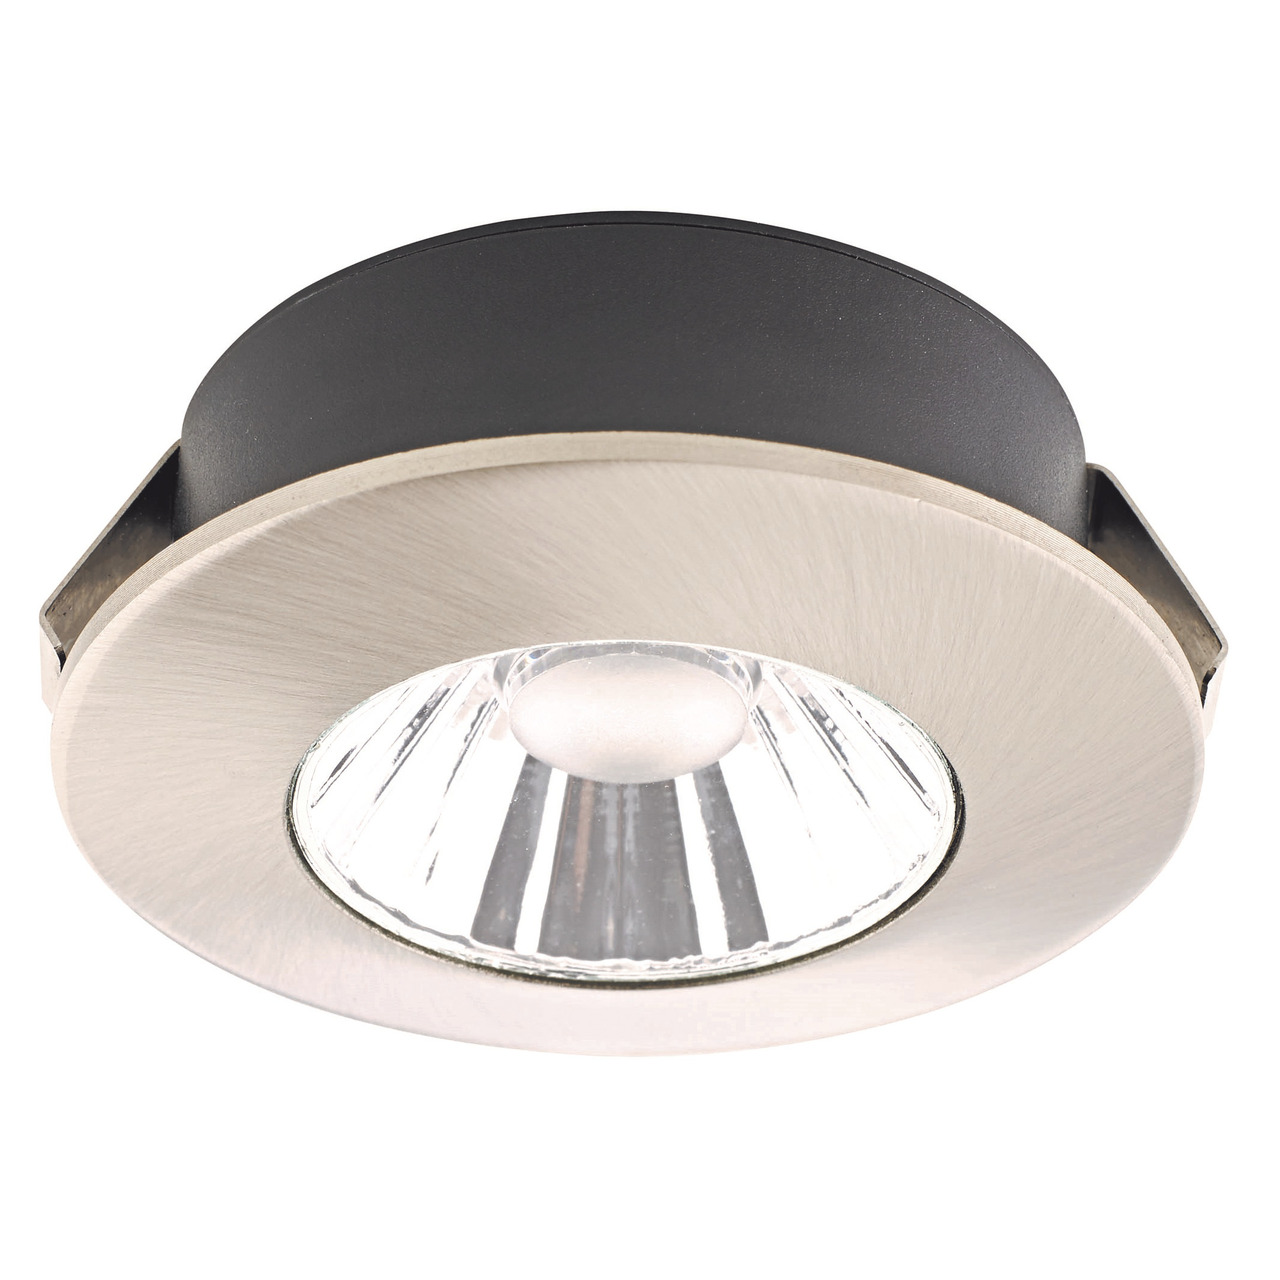 Civilight 4-W-LED-Downlight- warmweiss- 36- Nickel